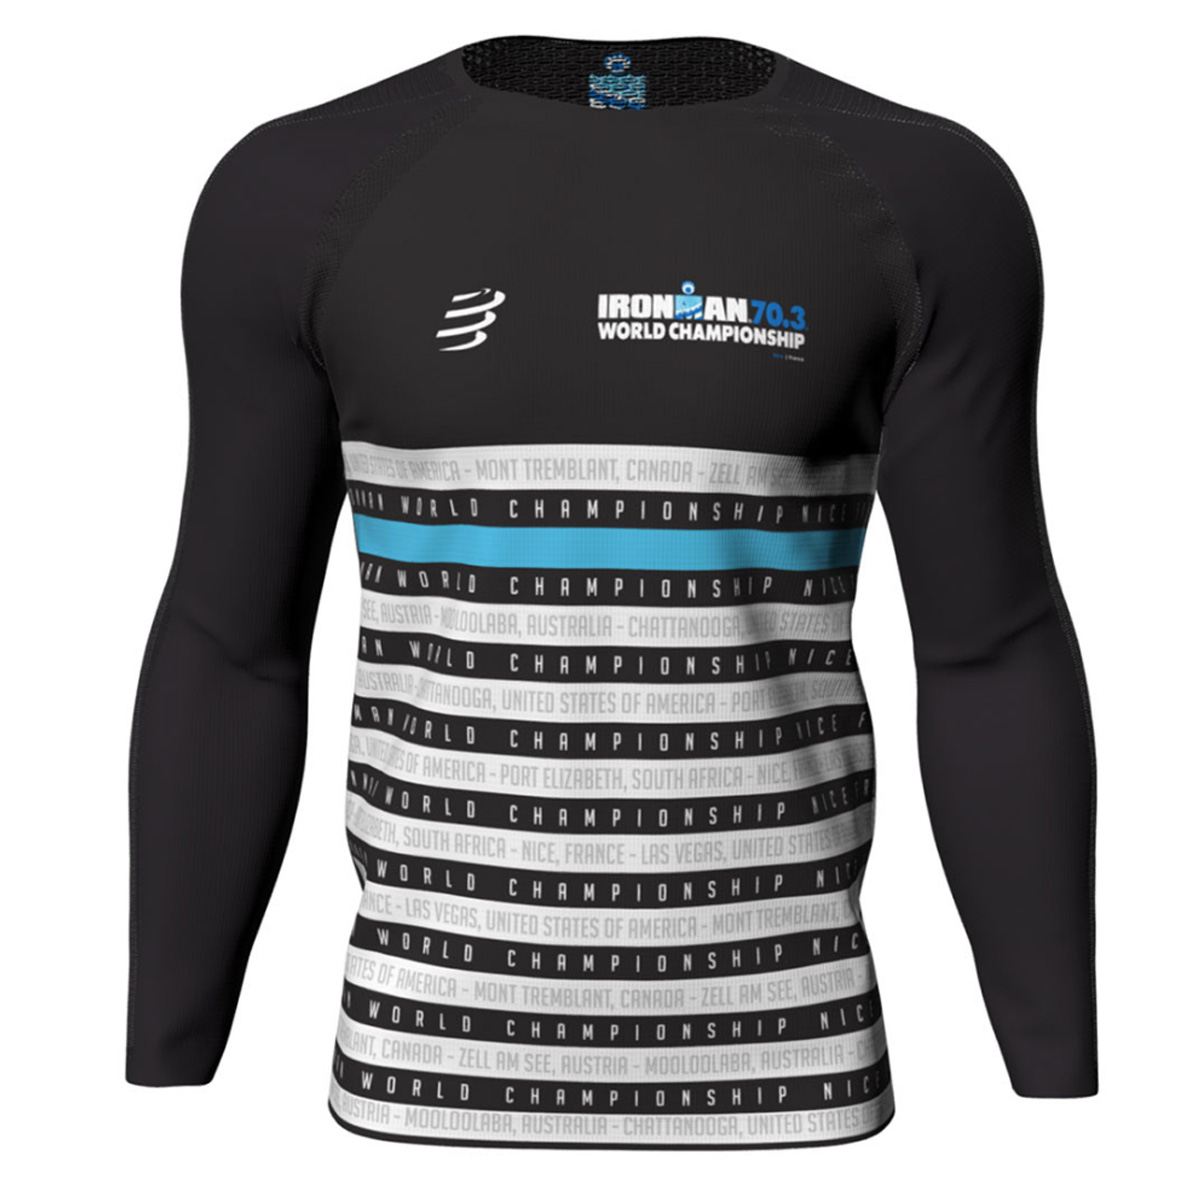 IRONMAN 70.3 WORLD CHAMPIONSHIP 2019 MEN'S LONG SLEEVE EVENT PERFORMANCE TEE